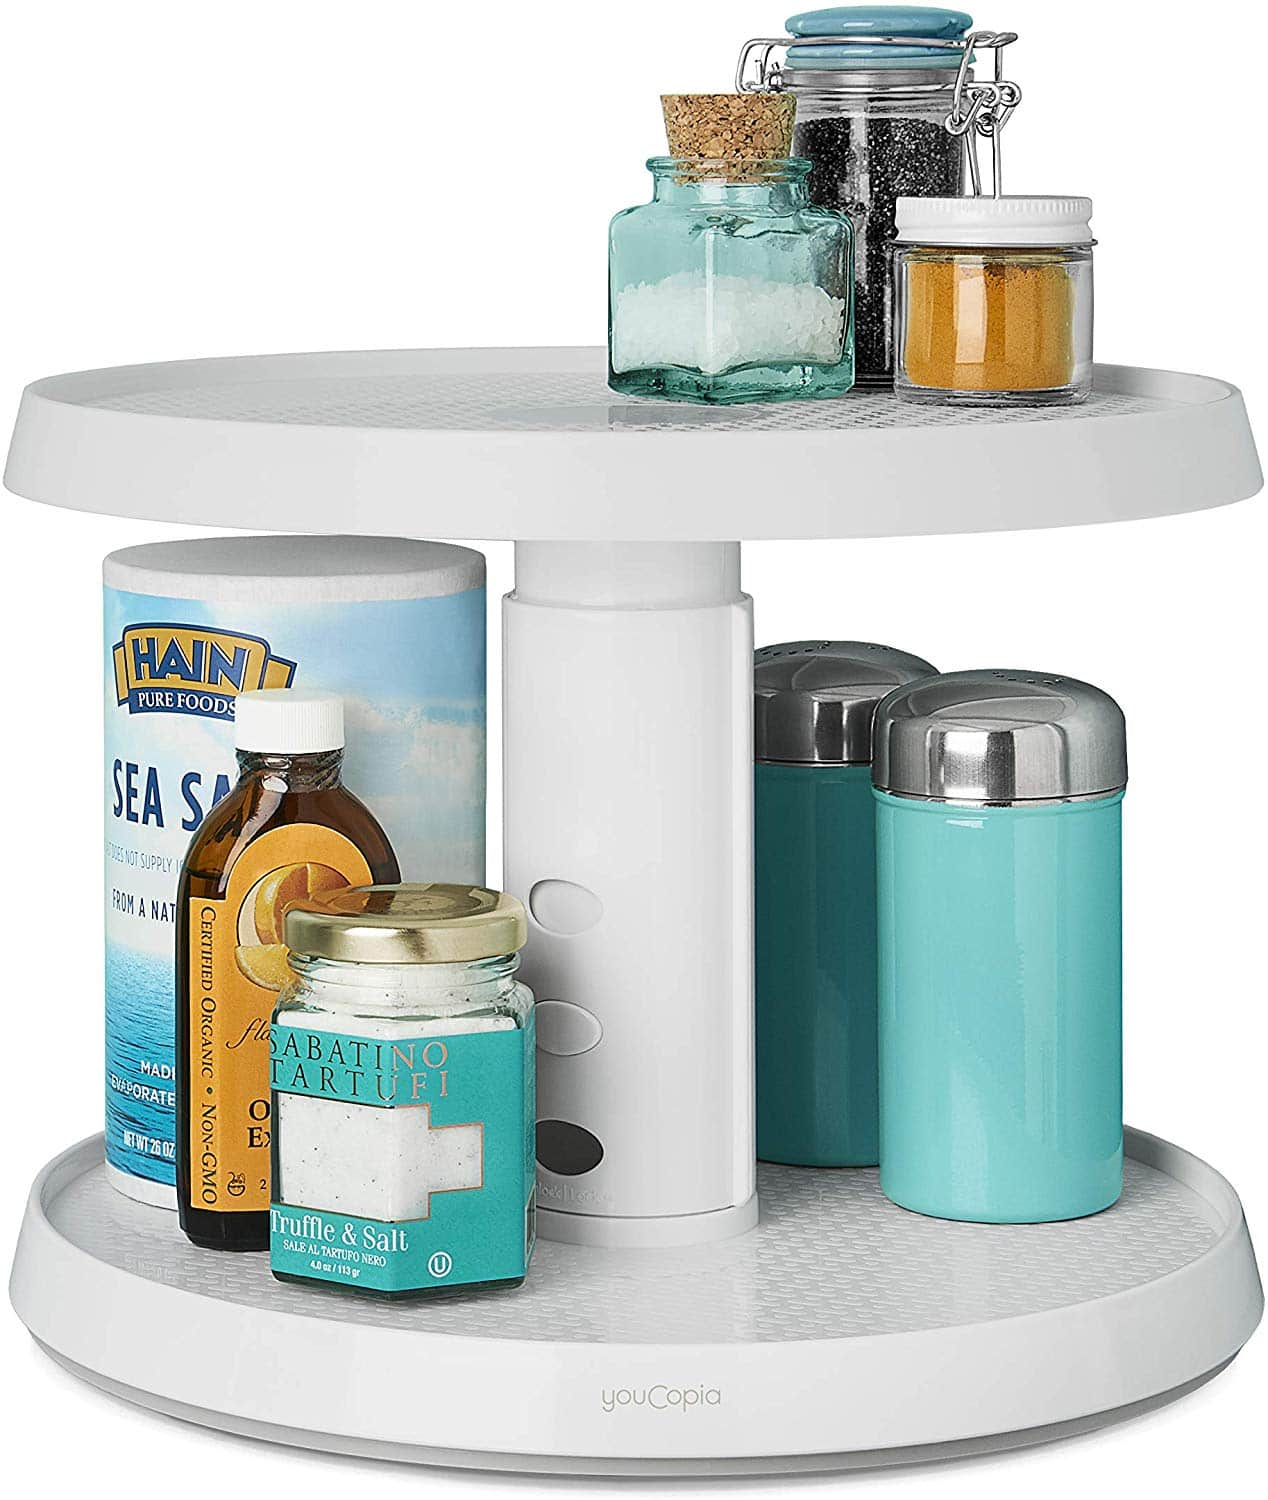 YouCopia 2-Tier Height Adjustable Crazy Susan Kitchen Cabinet Turntable and Spice Organizer [Two-Tier Susan] $17.99